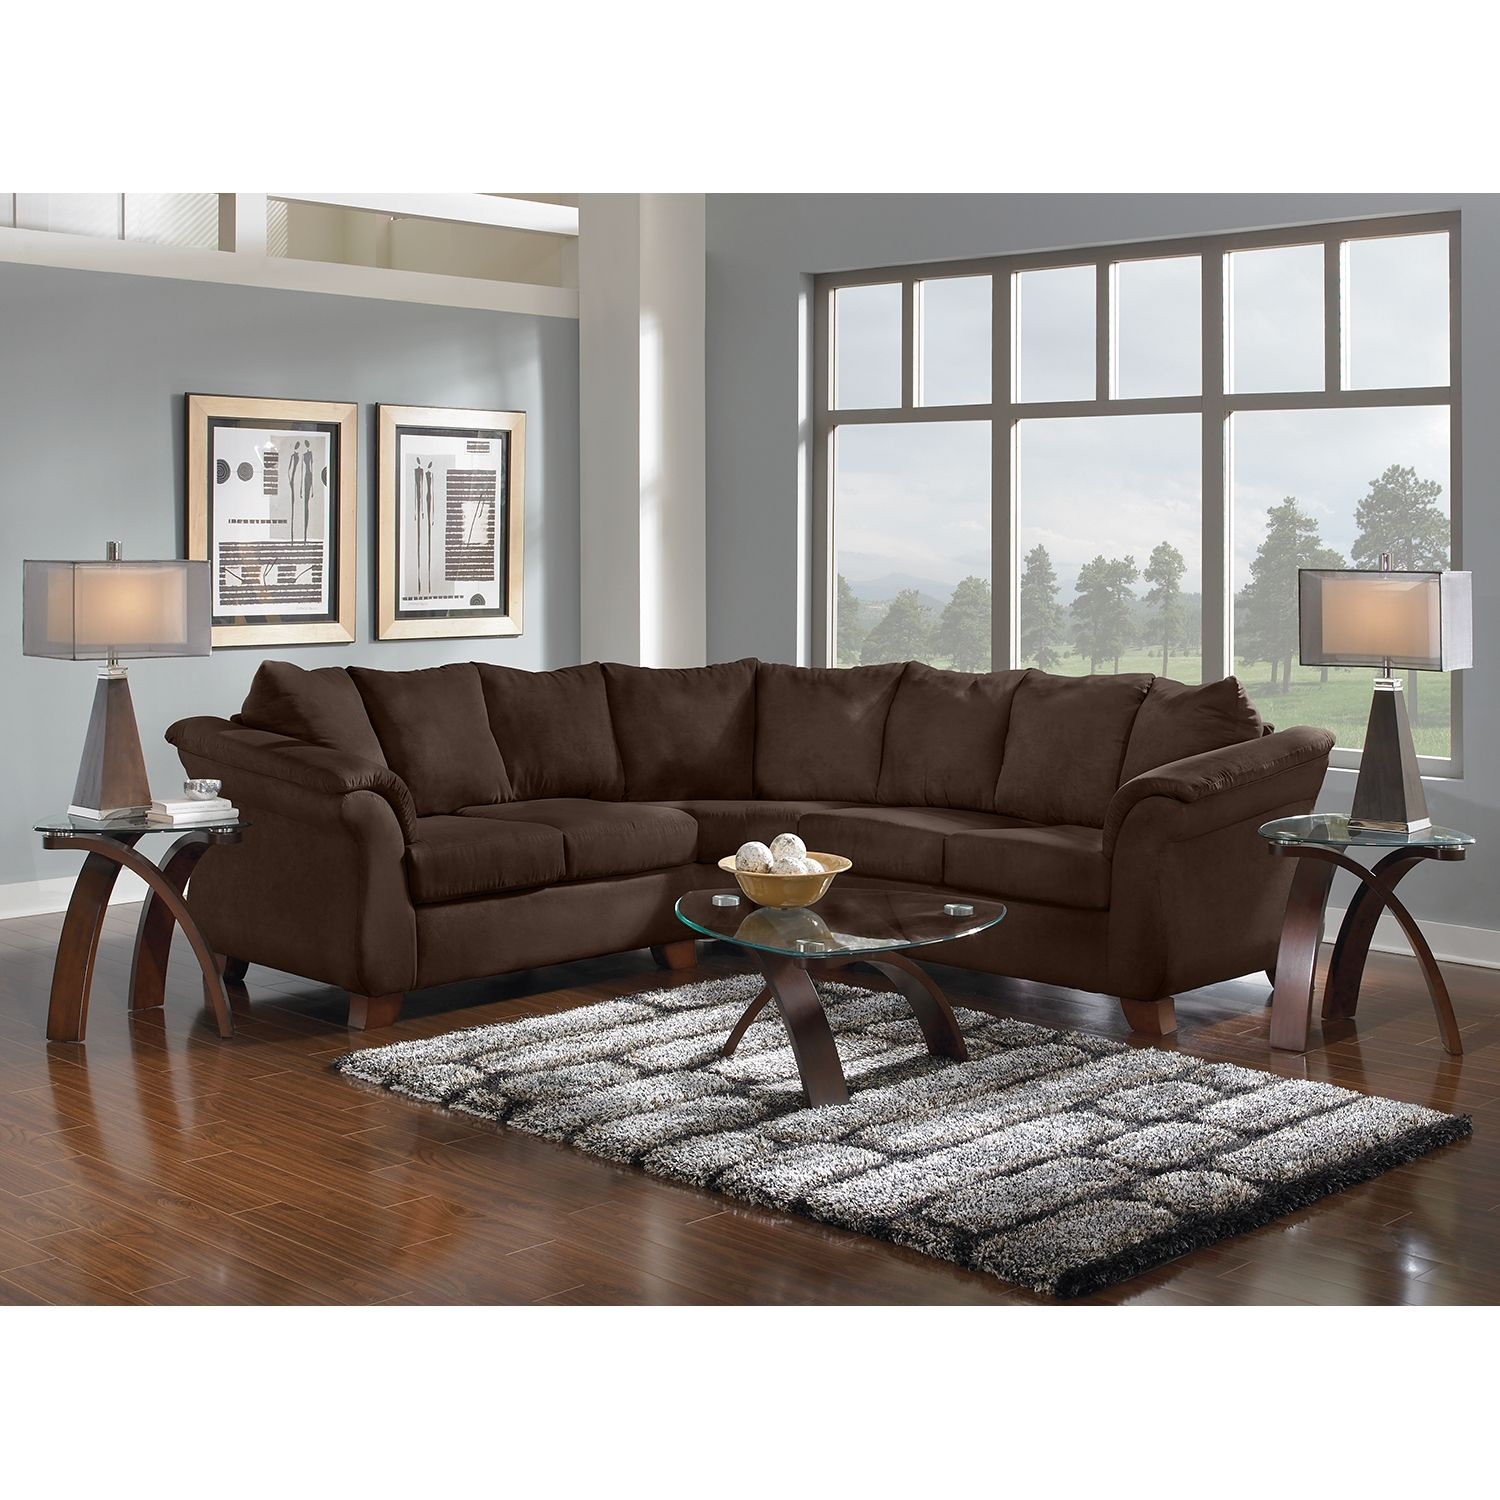 Adrian 2 Piece Sectional Chocolate Home living